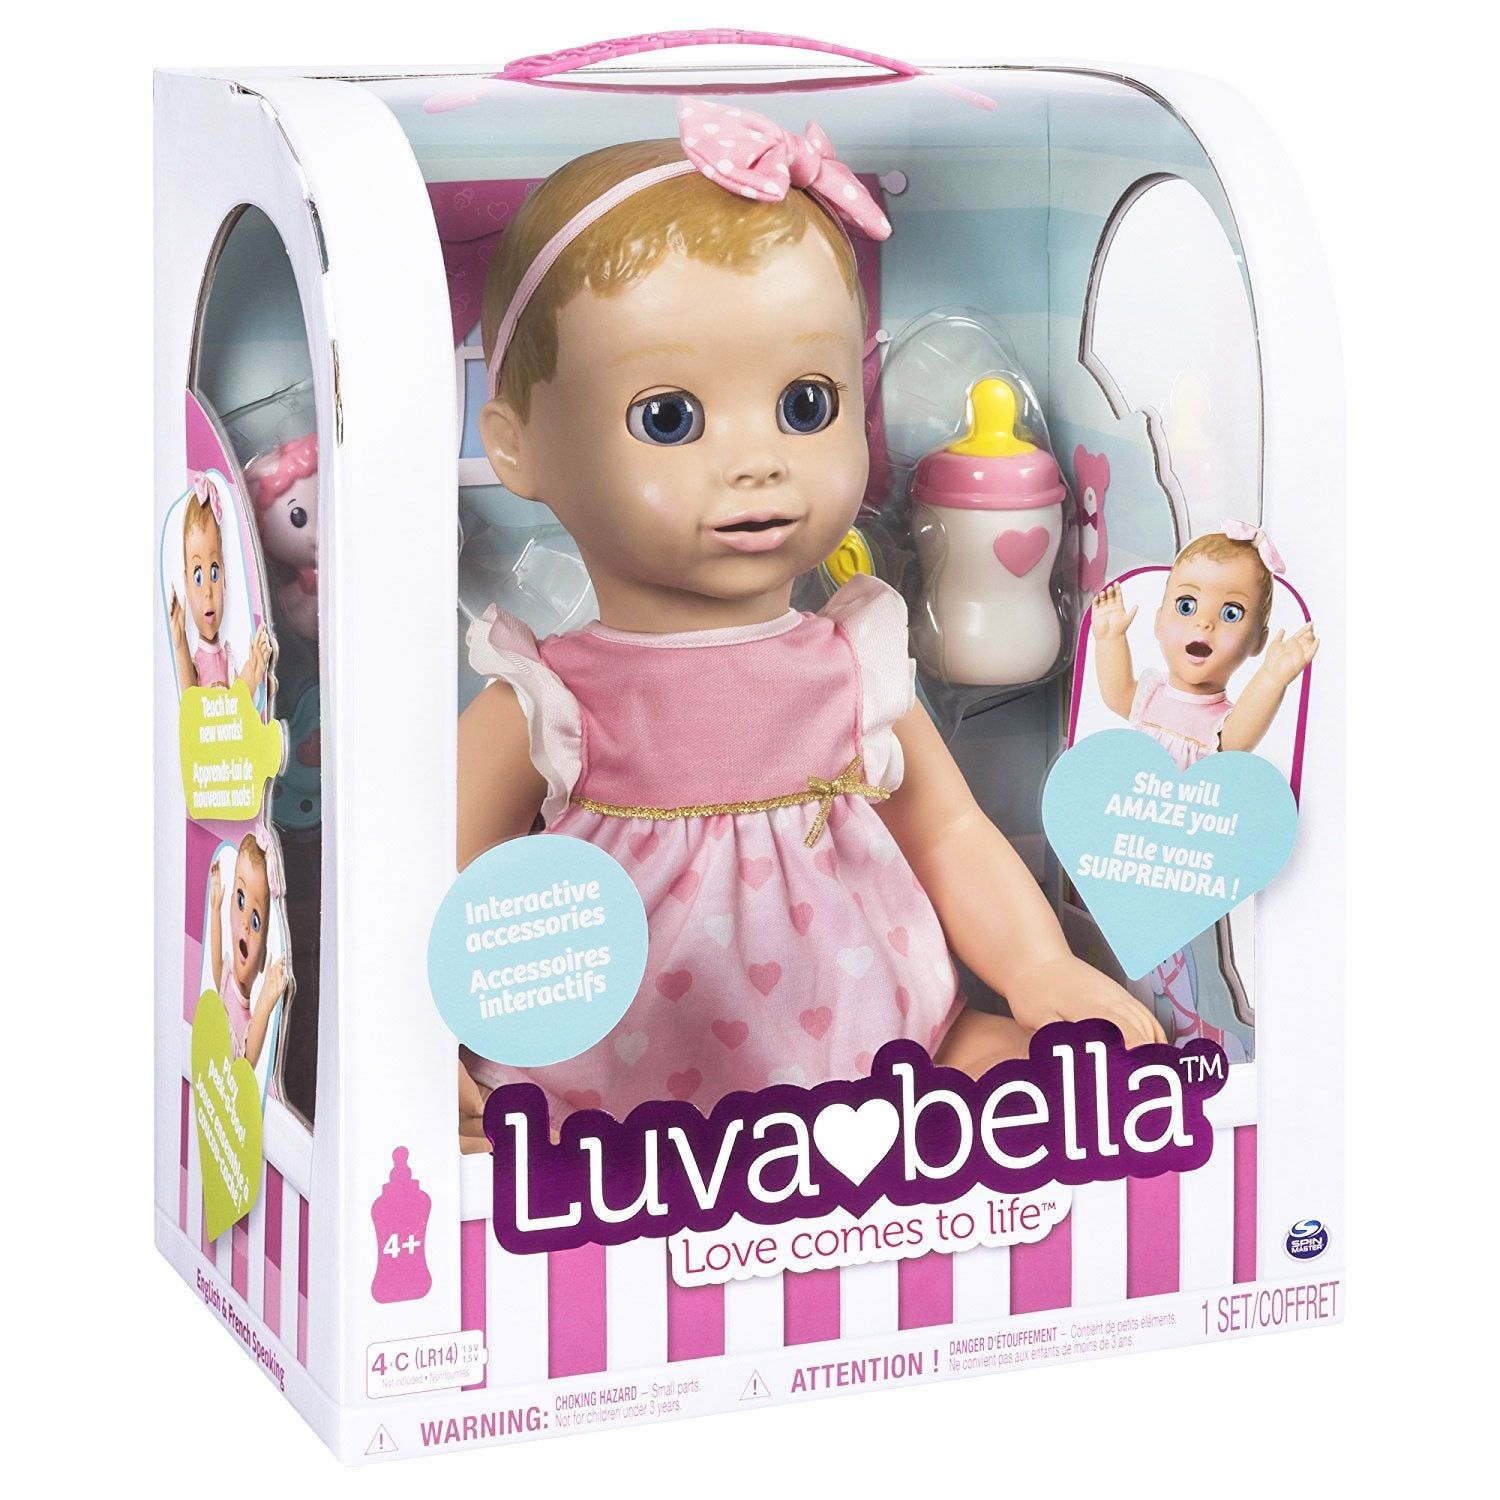 Buy Luvabella Responsive Baby Doll Online At Toy Universe